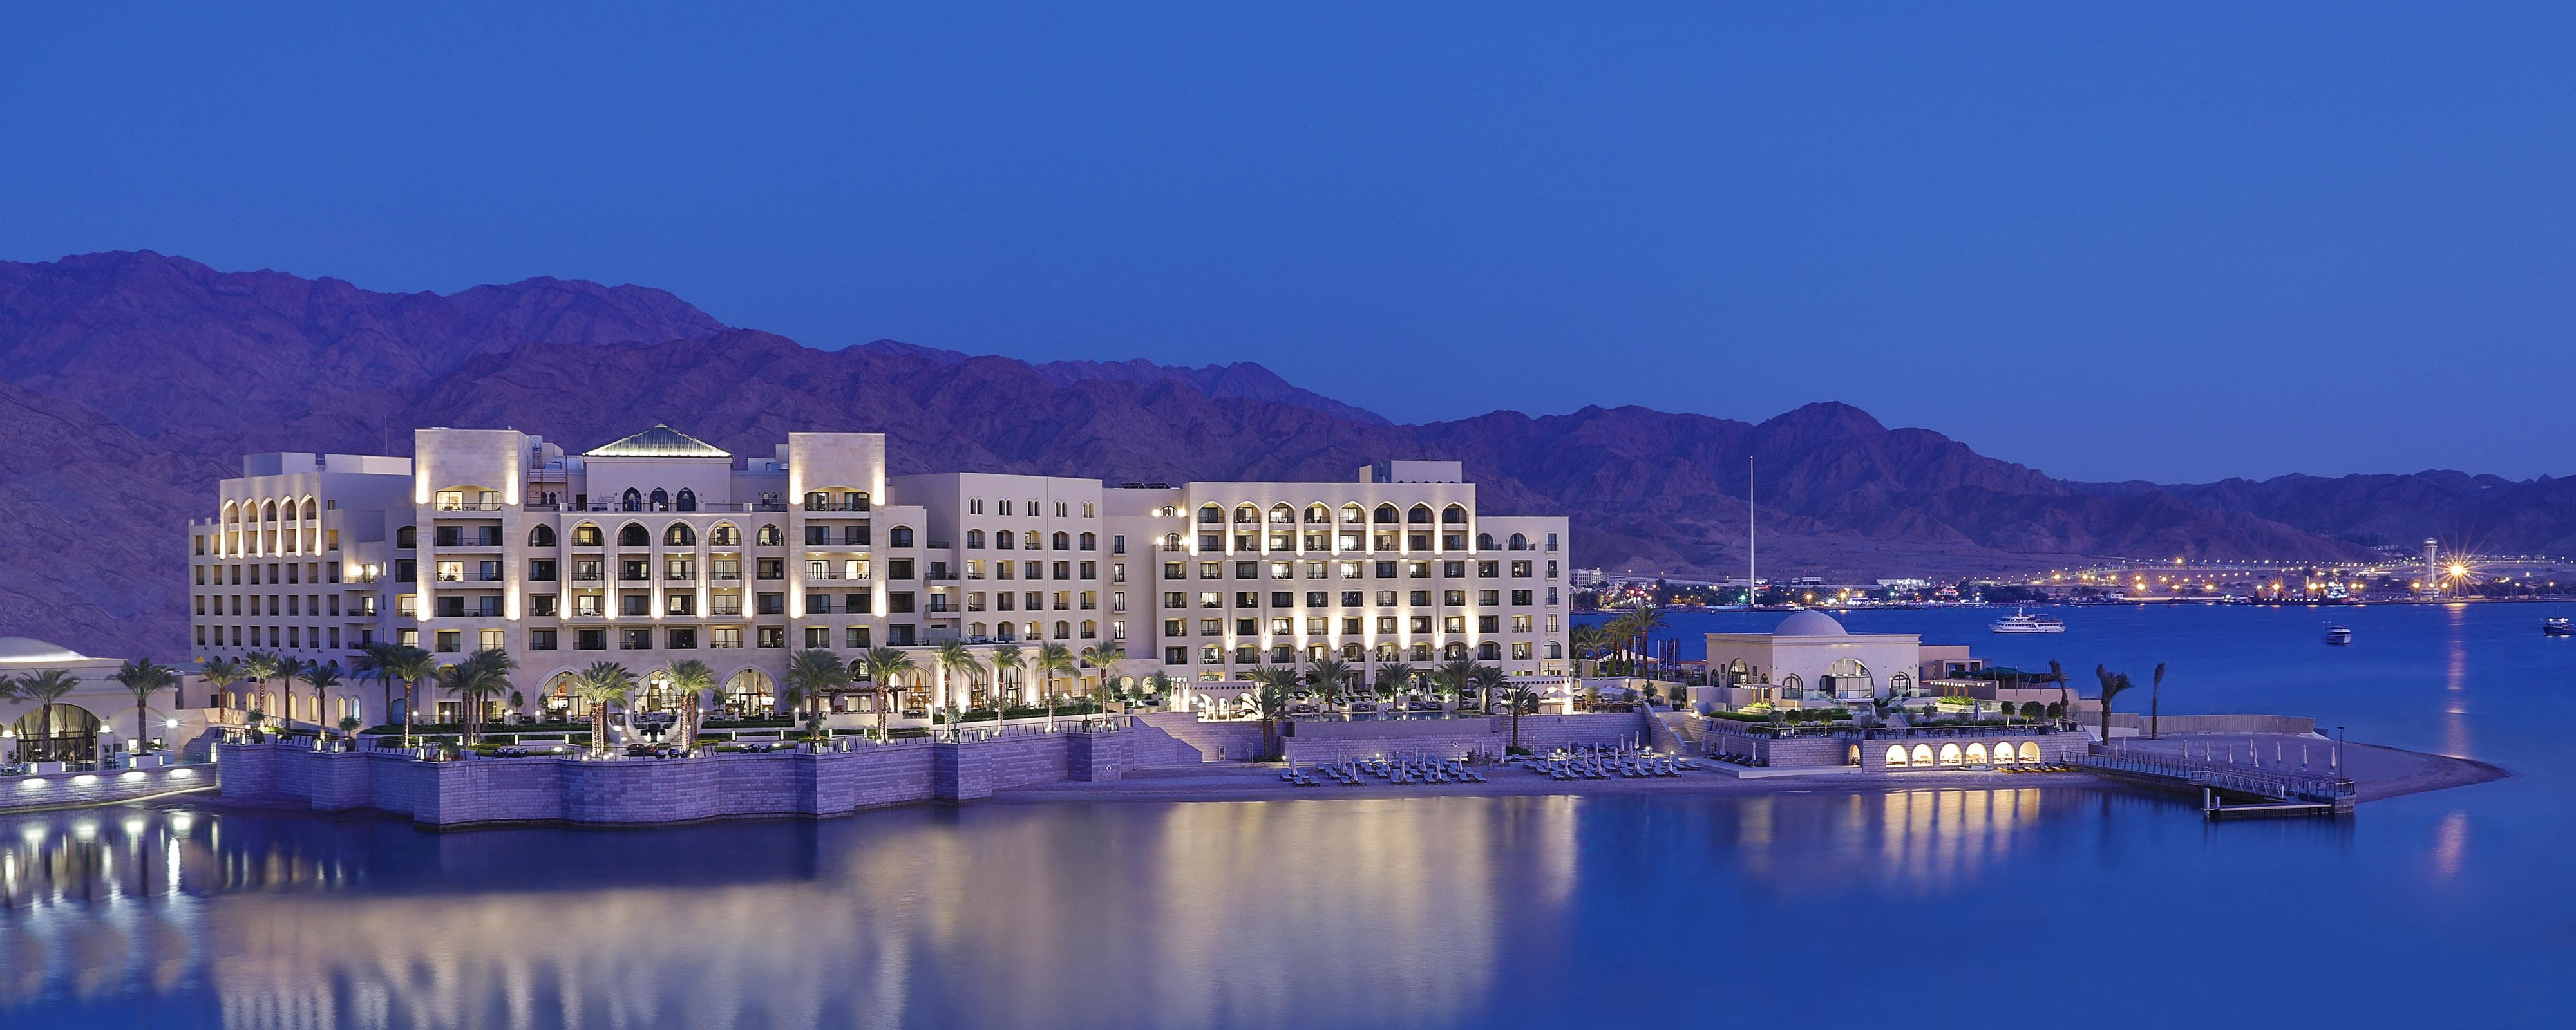 Situated on the shores of the Red Sea, Al Manara Hotel offers a variety of experiences for adventure, leisure and exploration.